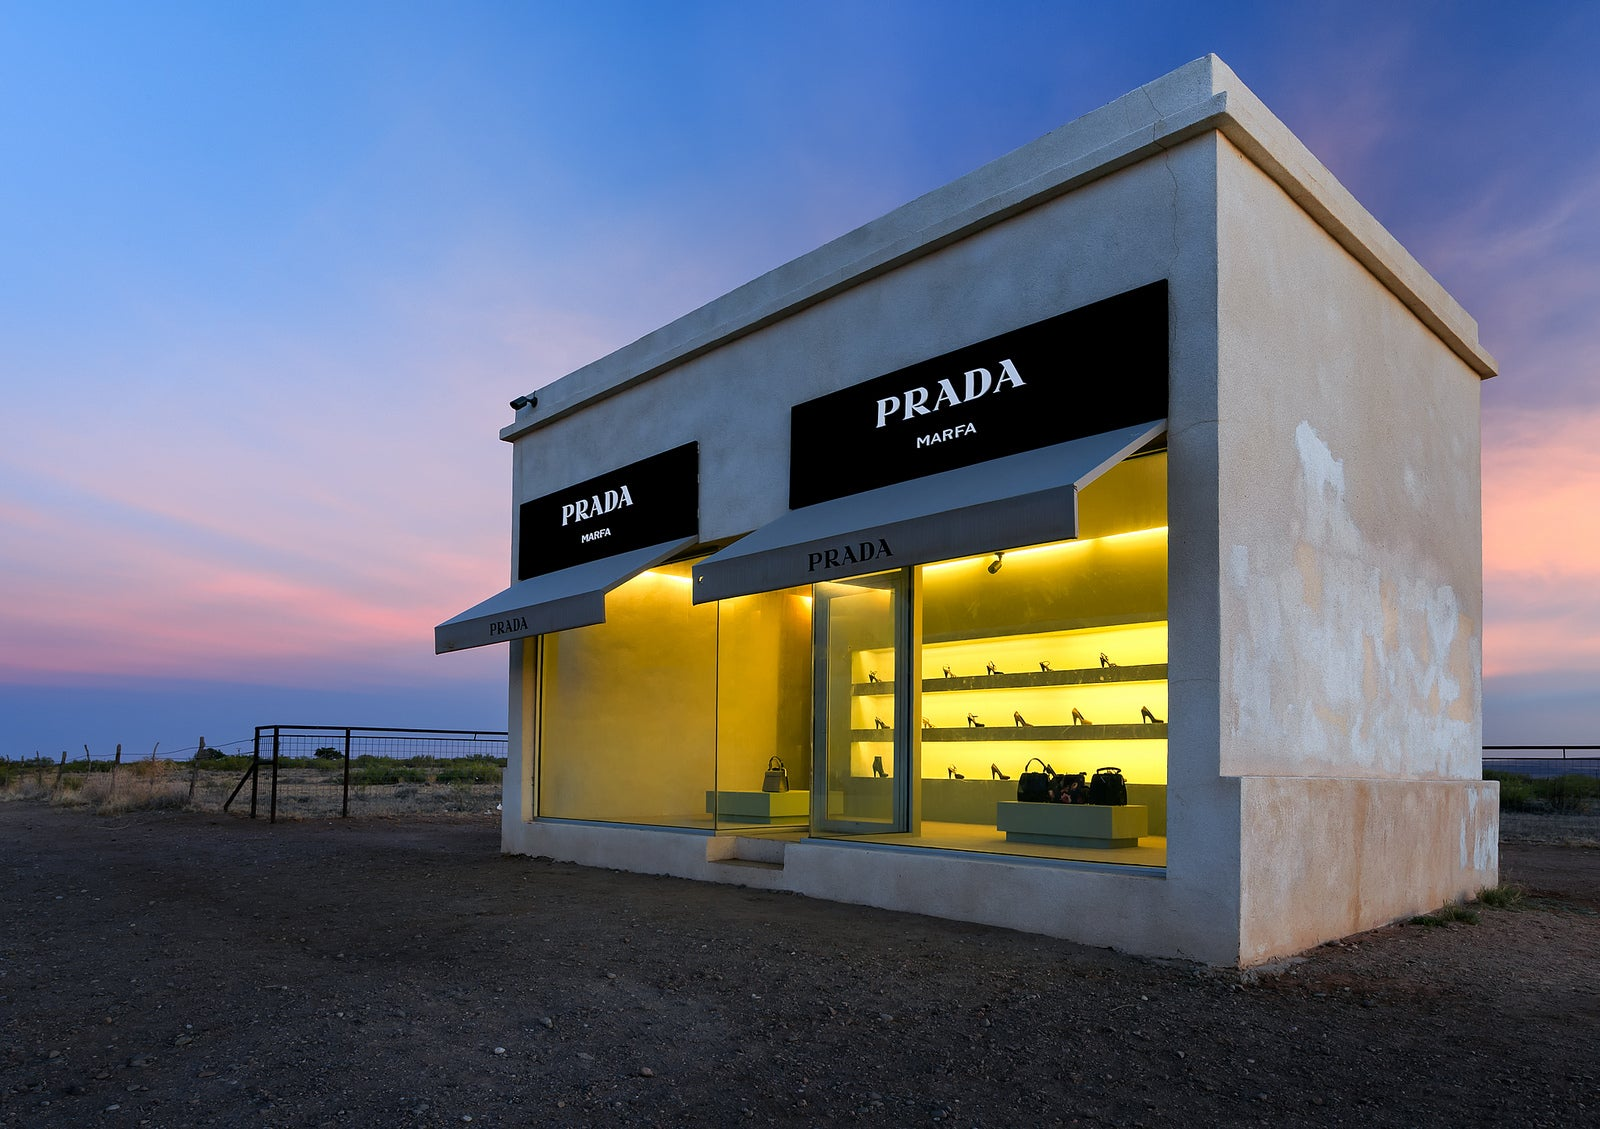 prada marfa may be doomed to demolishment. Black Bedroom Furniture Sets. Home Design Ideas